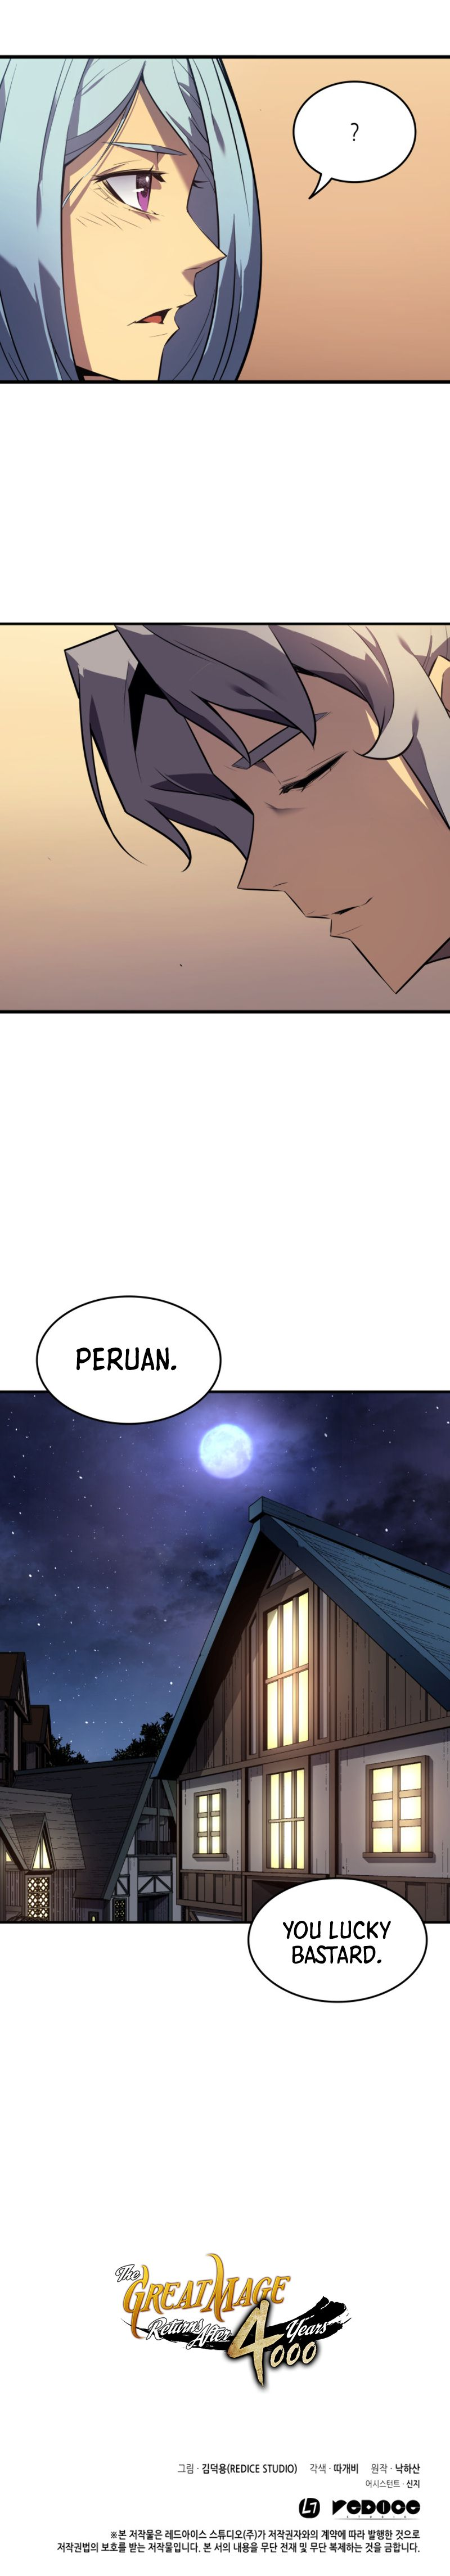 The Great Mage Returns After 4000 Years - chapter 29-eng-li